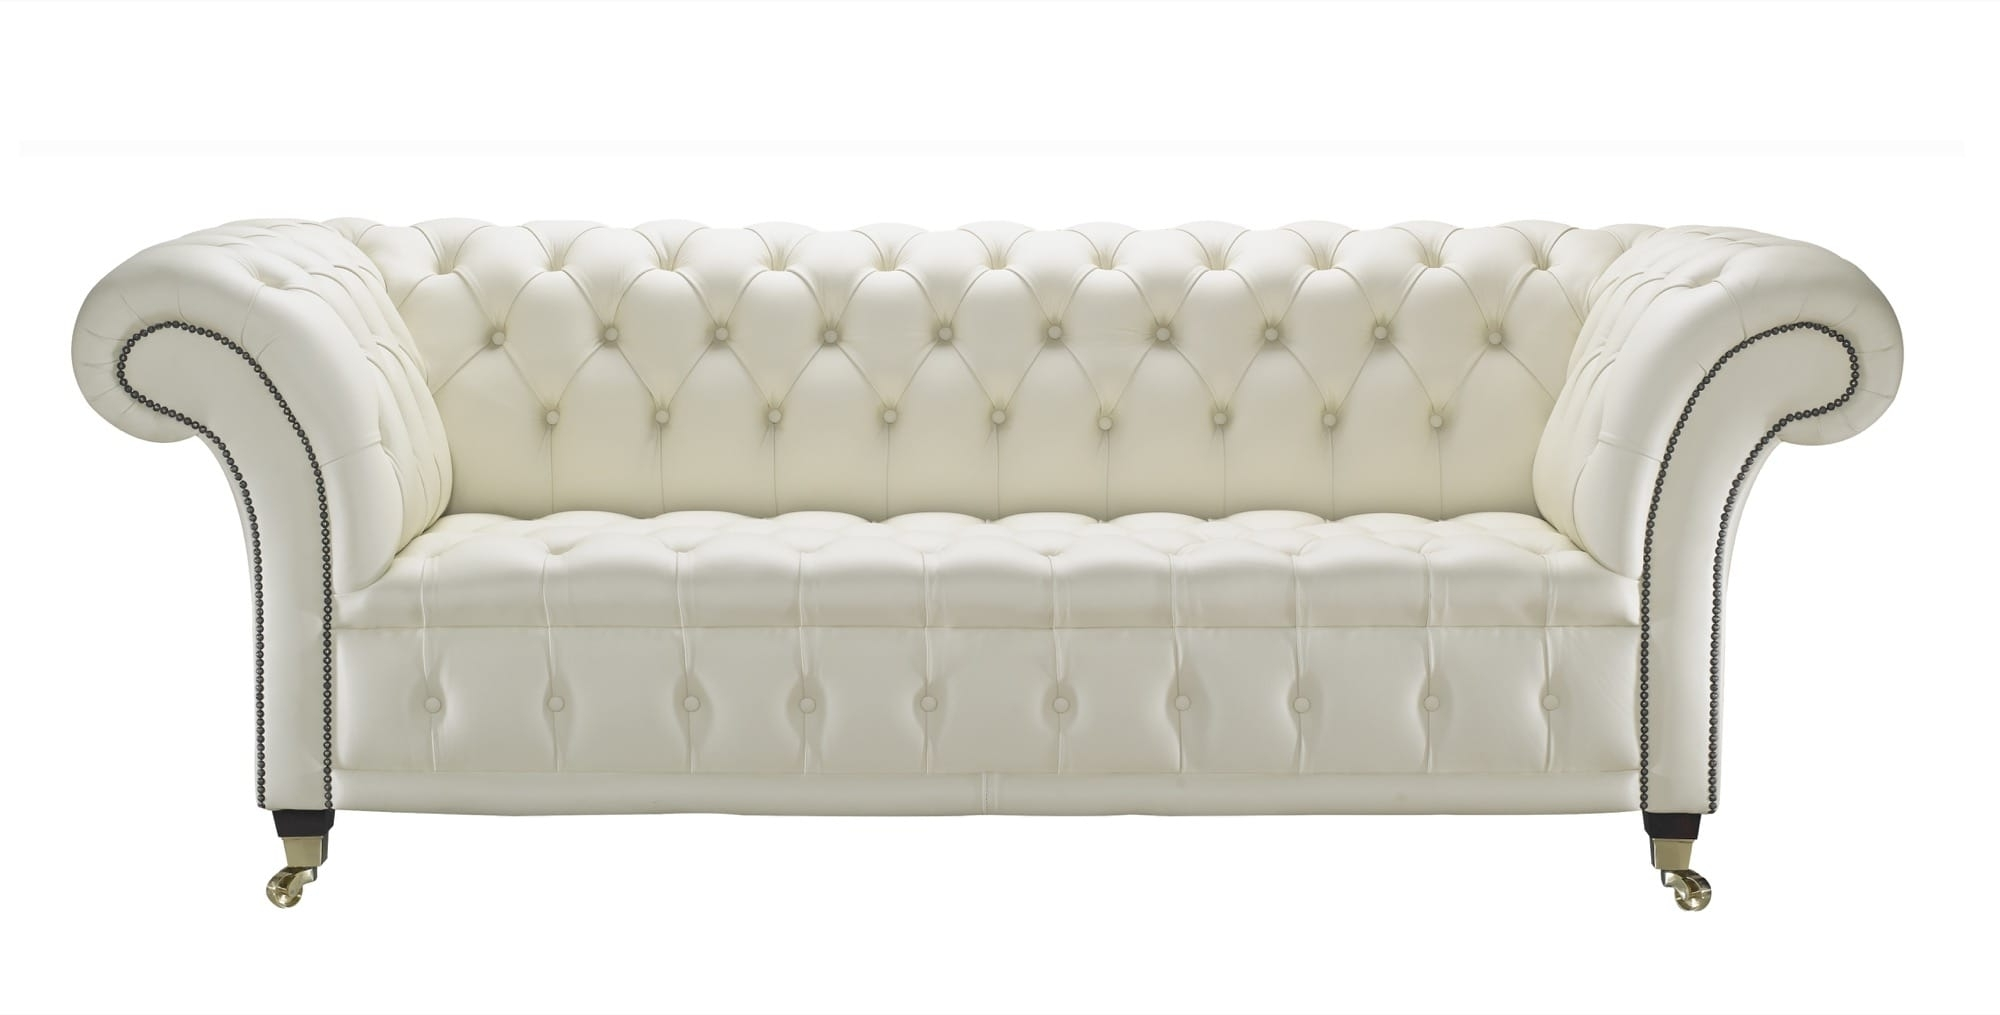 Leather Chesterfield Sofas For Popular Cream Leather Chesterfield Sofa, Handcrafted In The Uk (View 7 of 20)